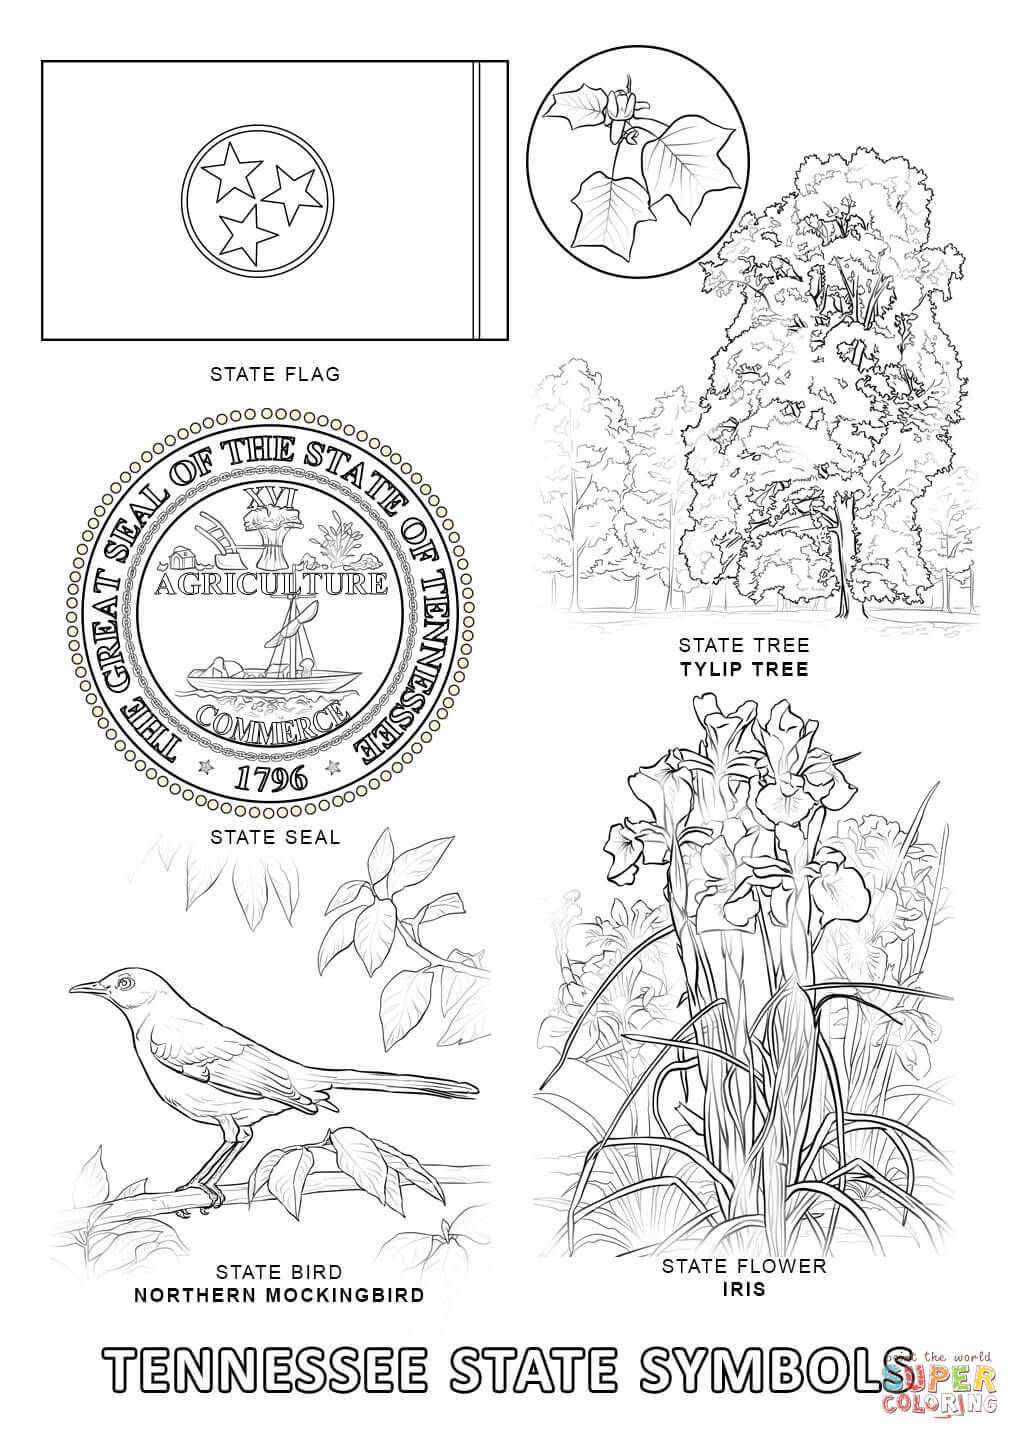 Tennessee State Symbols Coloring Page From Category Select 28415 Printable Crafts Of Cartoons Nature Animals Bible And Many More